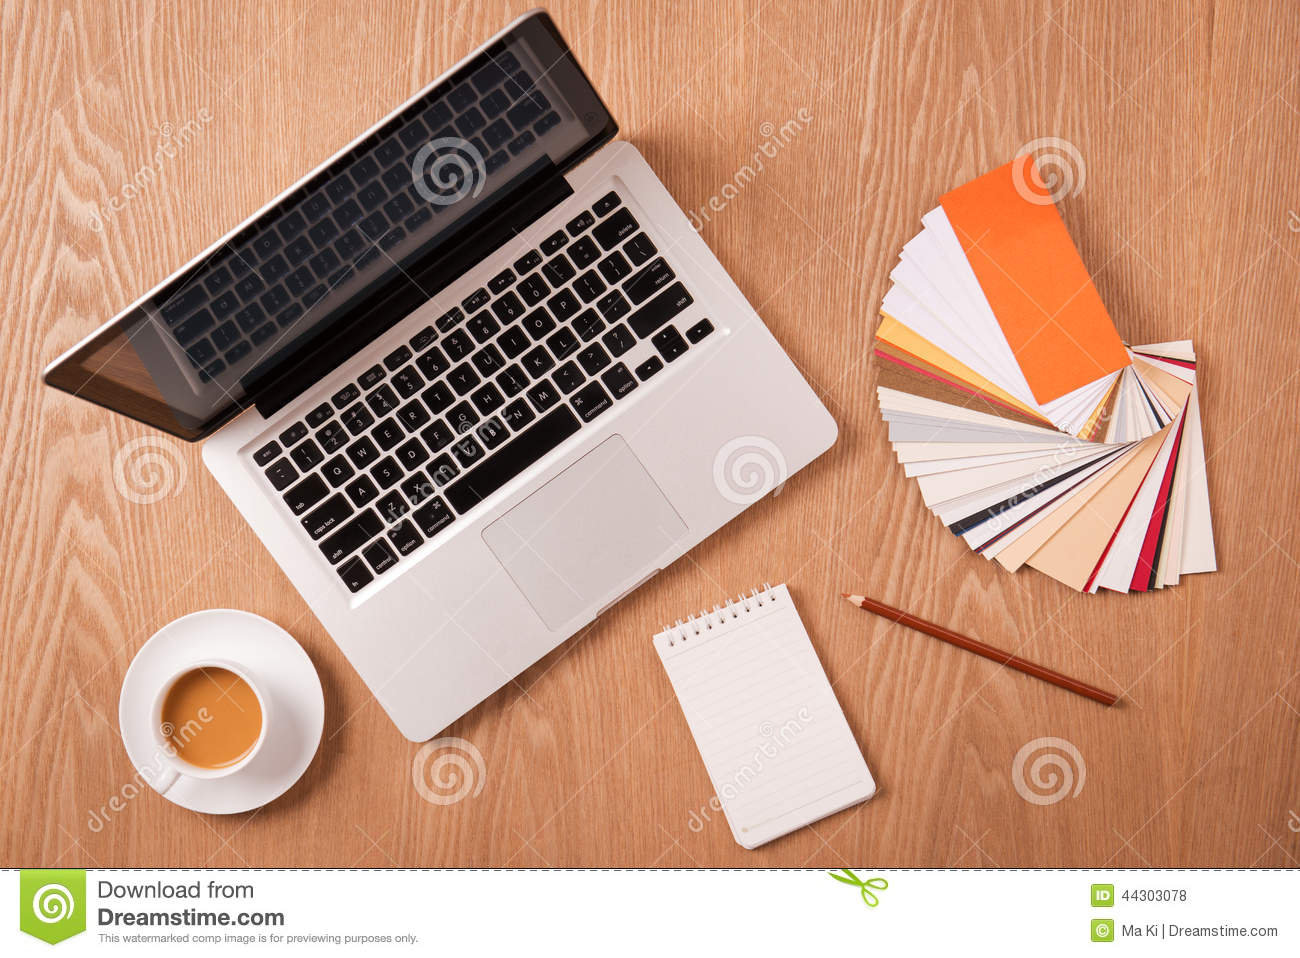 Laptop with designer color swatches and office supplies